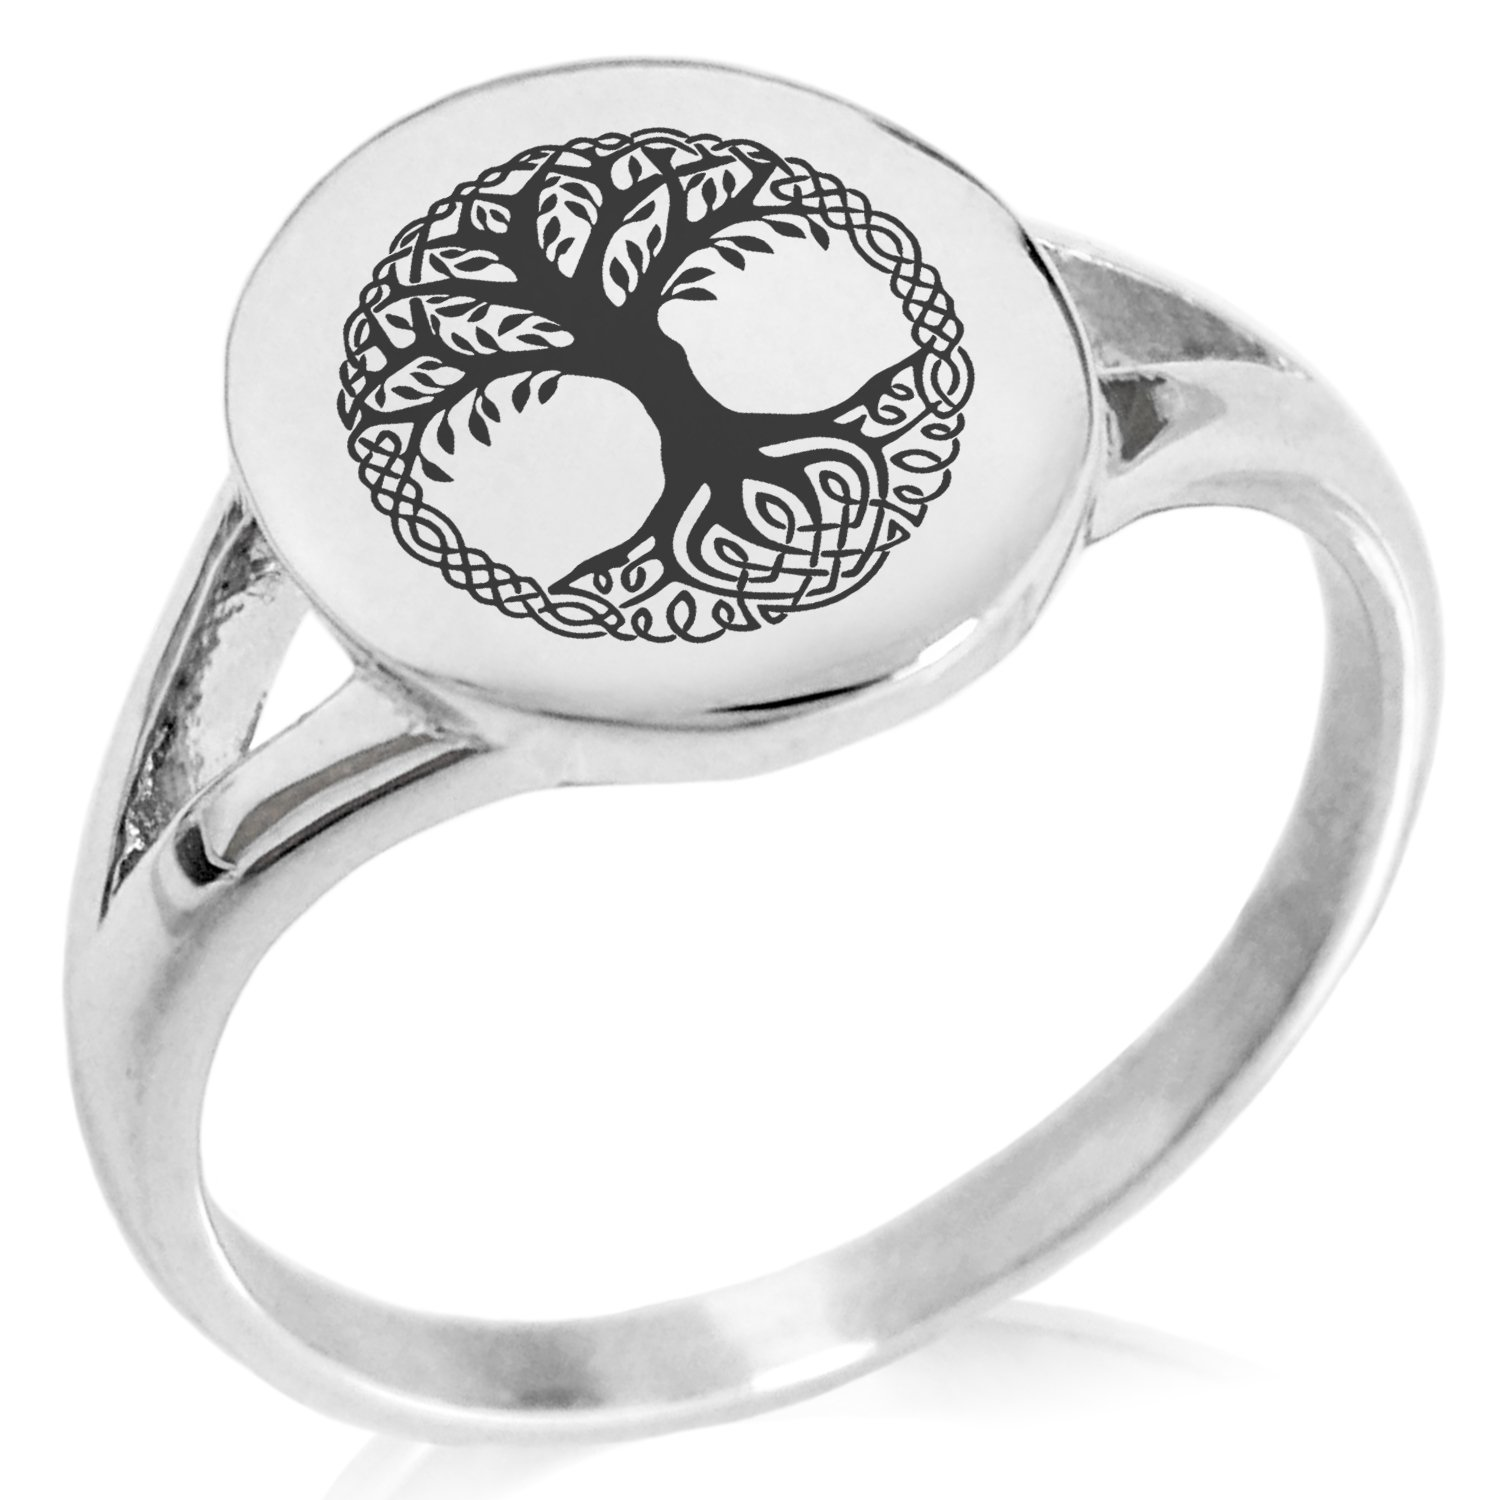 Tioneer Stainless Steel Yggdrasil Great Tree of Life Viking Norse Symbol Minimalist Oval Top Polished Statement Ring, Size 7